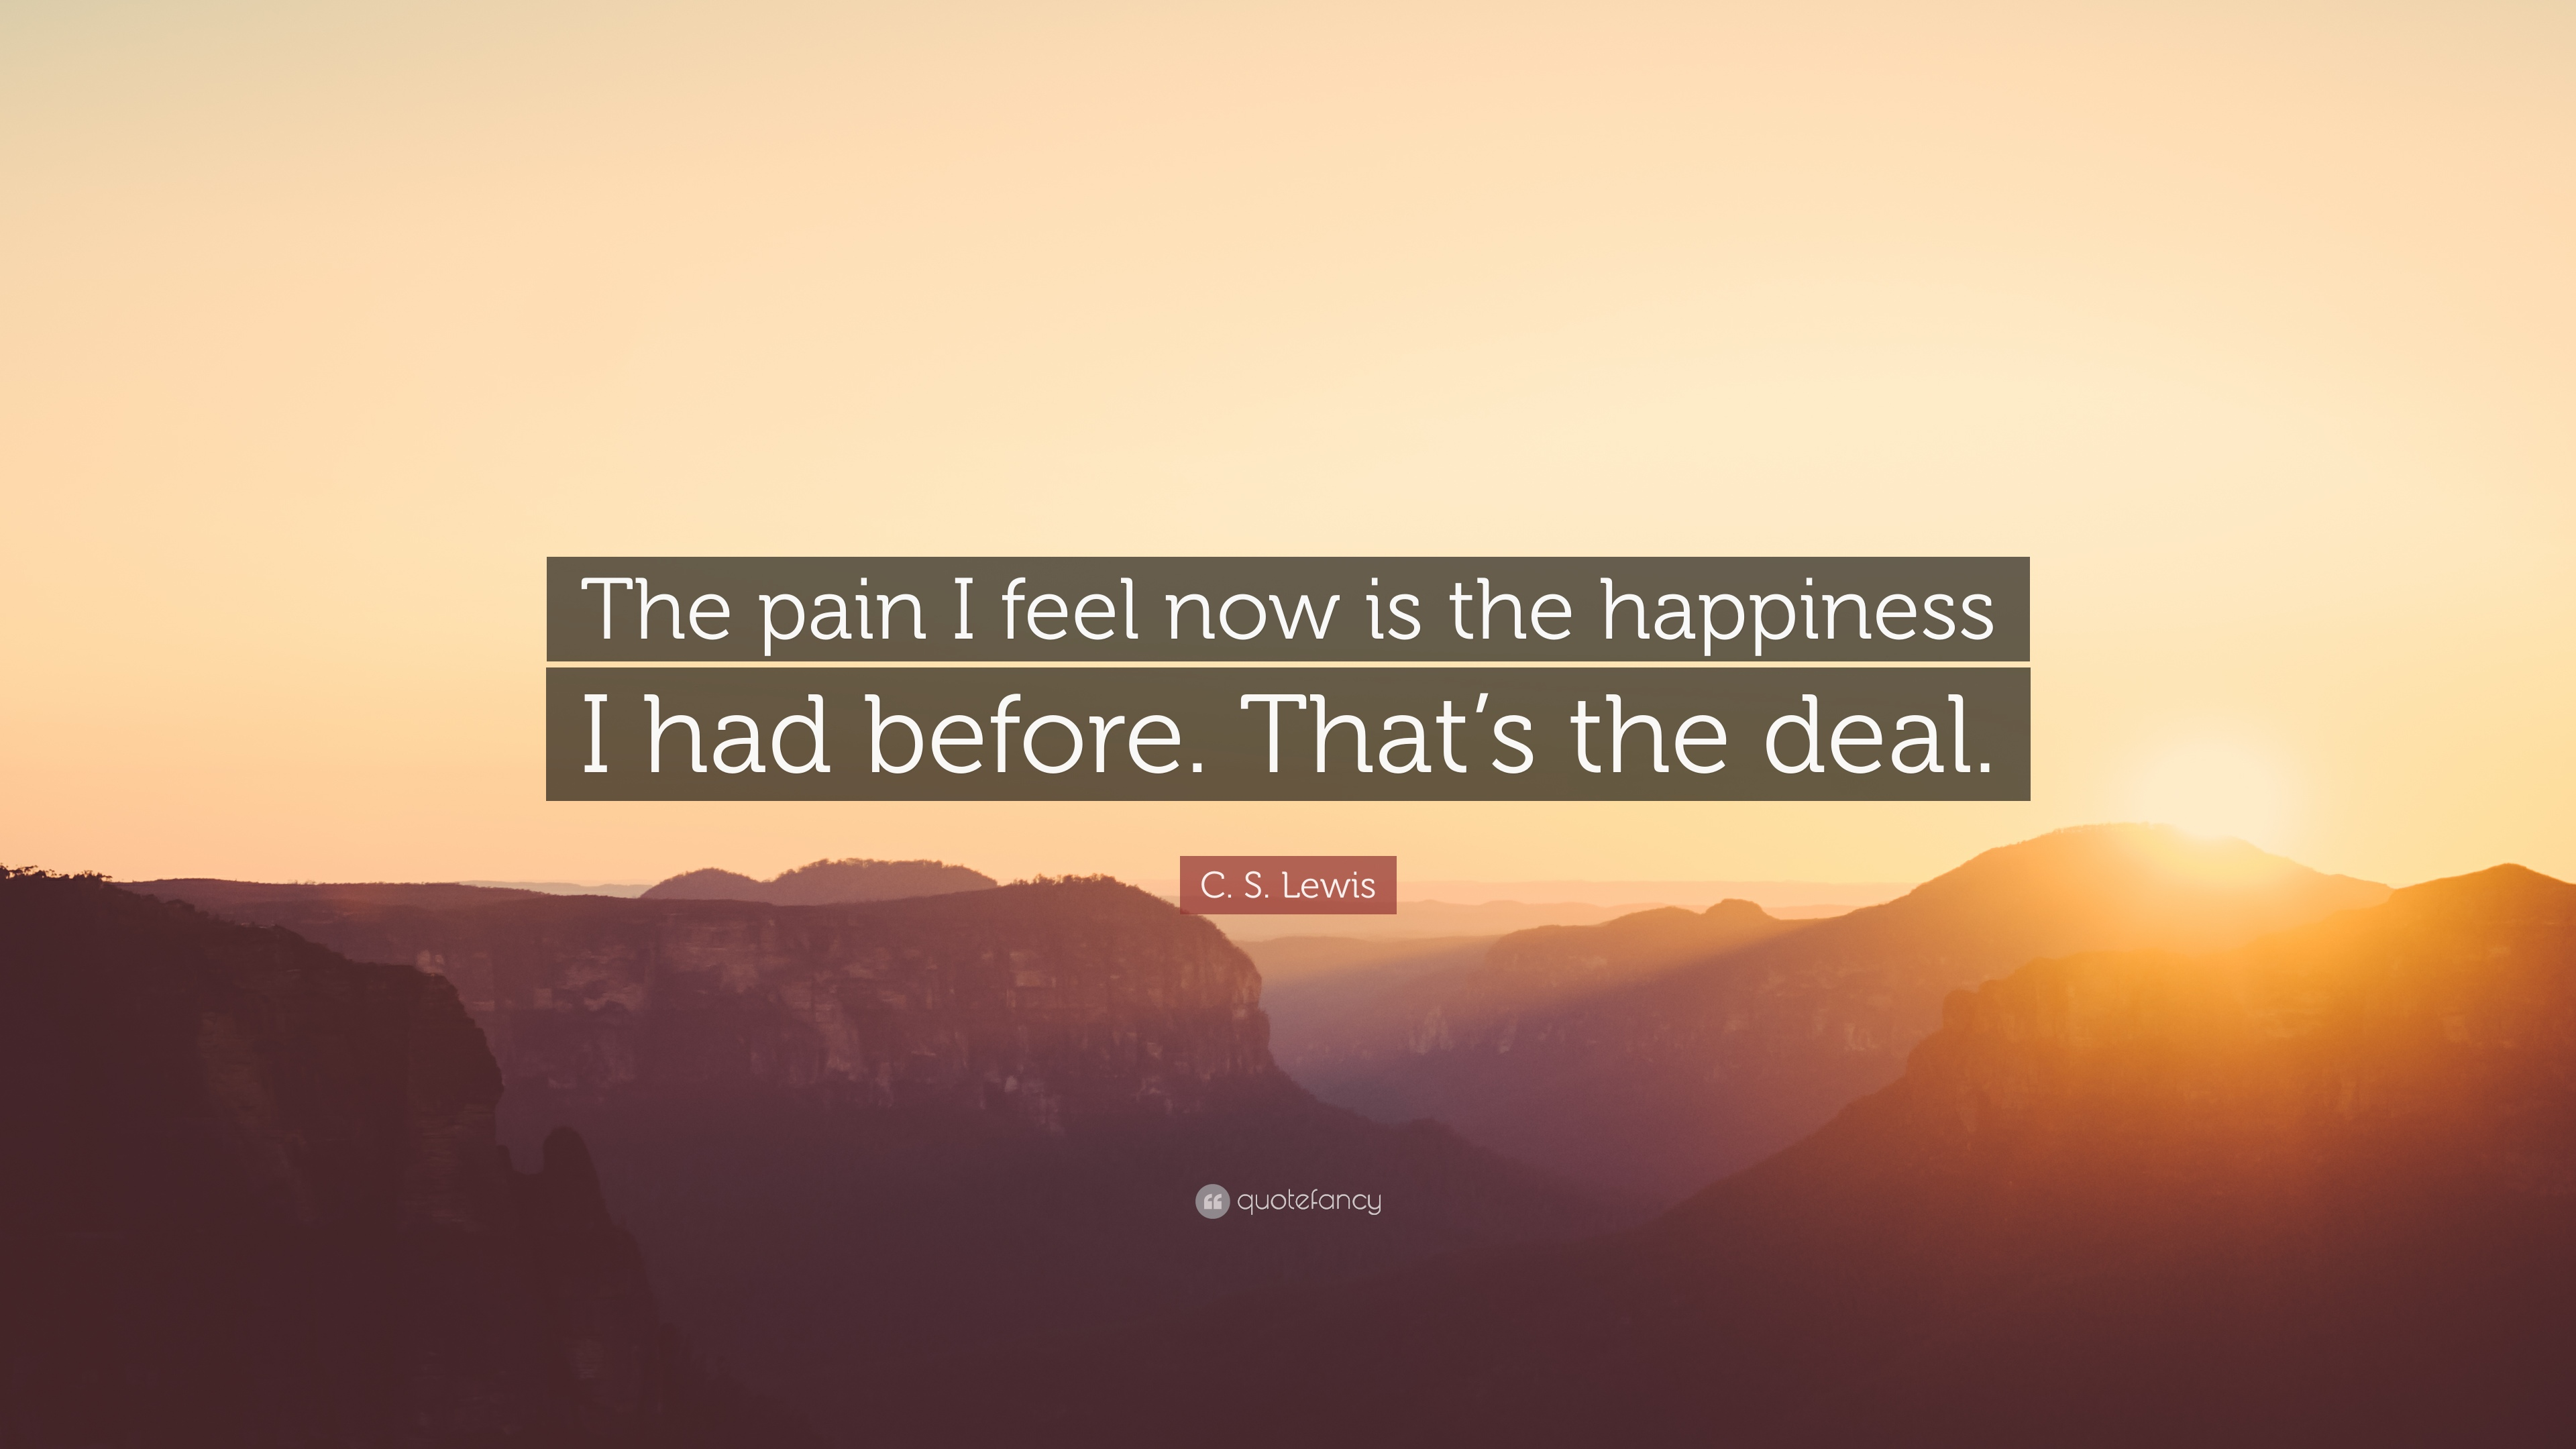 C S Lewis Quote The Pain I Feel Now Is The Happiness I Had